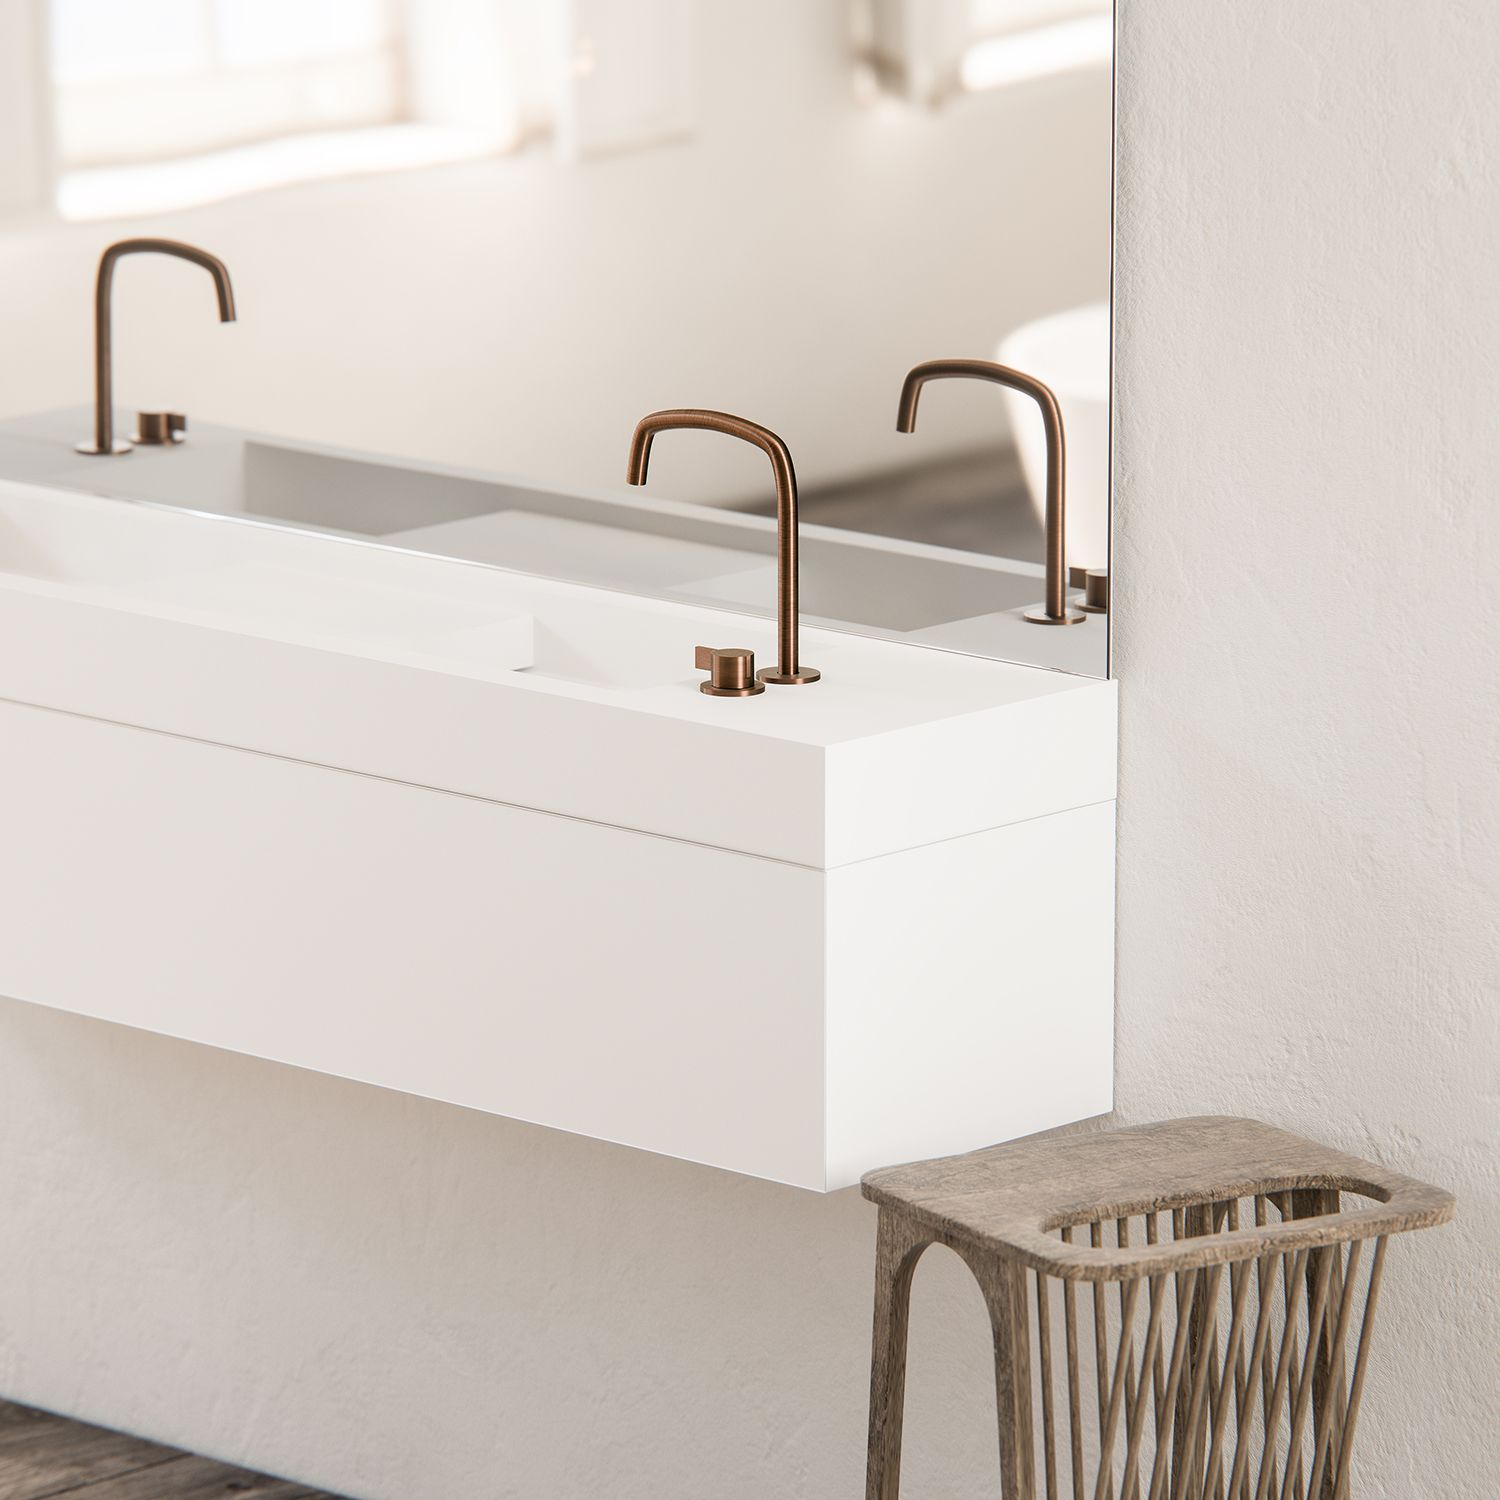 Pin Op Piet Boon Taps Basins By Cocoon